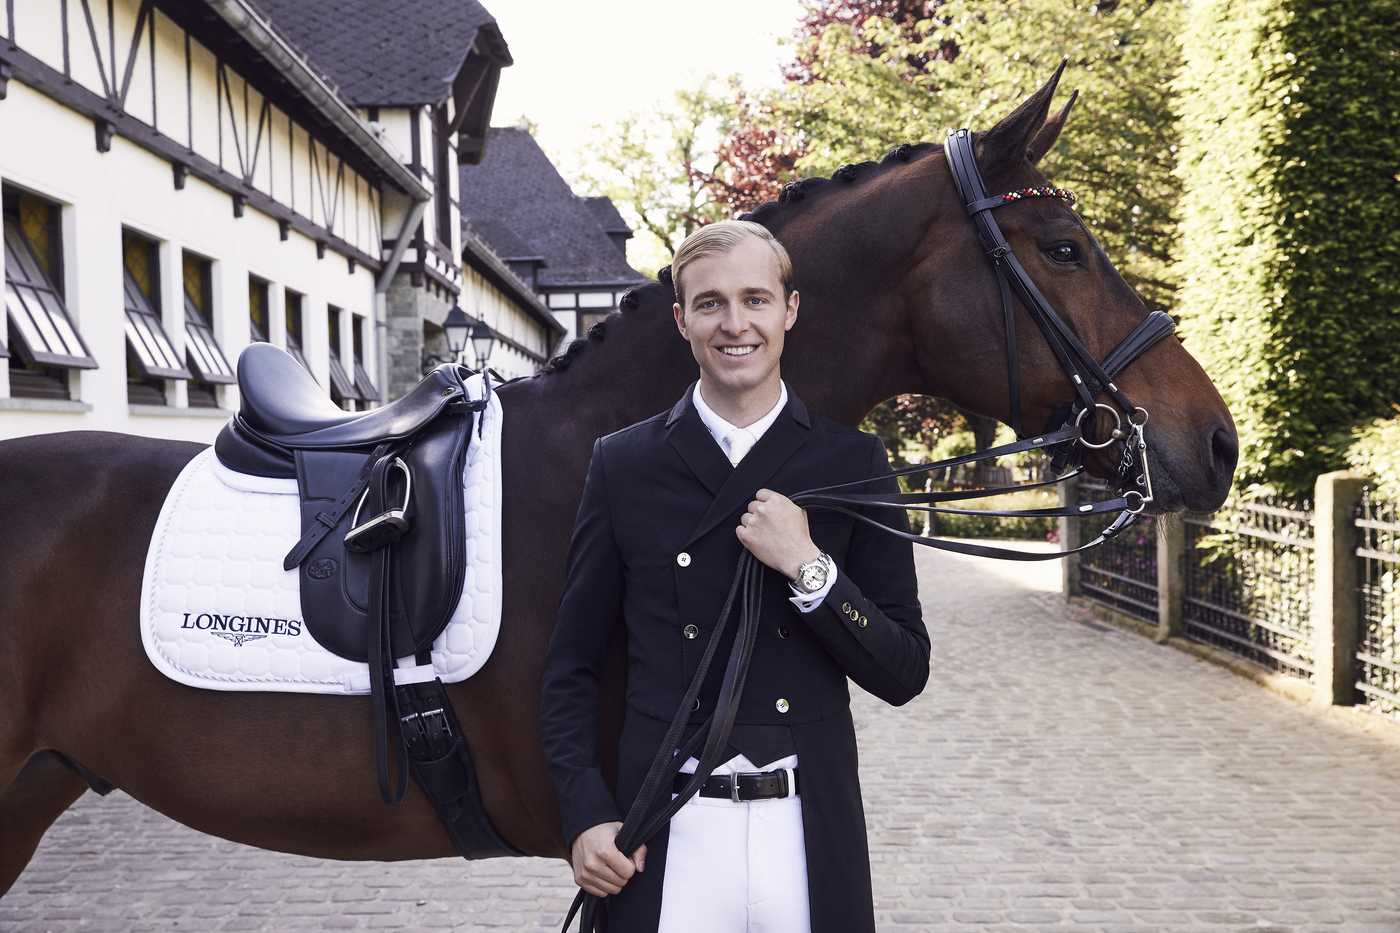 Longines Corporate Event: Dressage's rising star Sönke Rothenberger has become a Longines Ambassador of Elegance 2